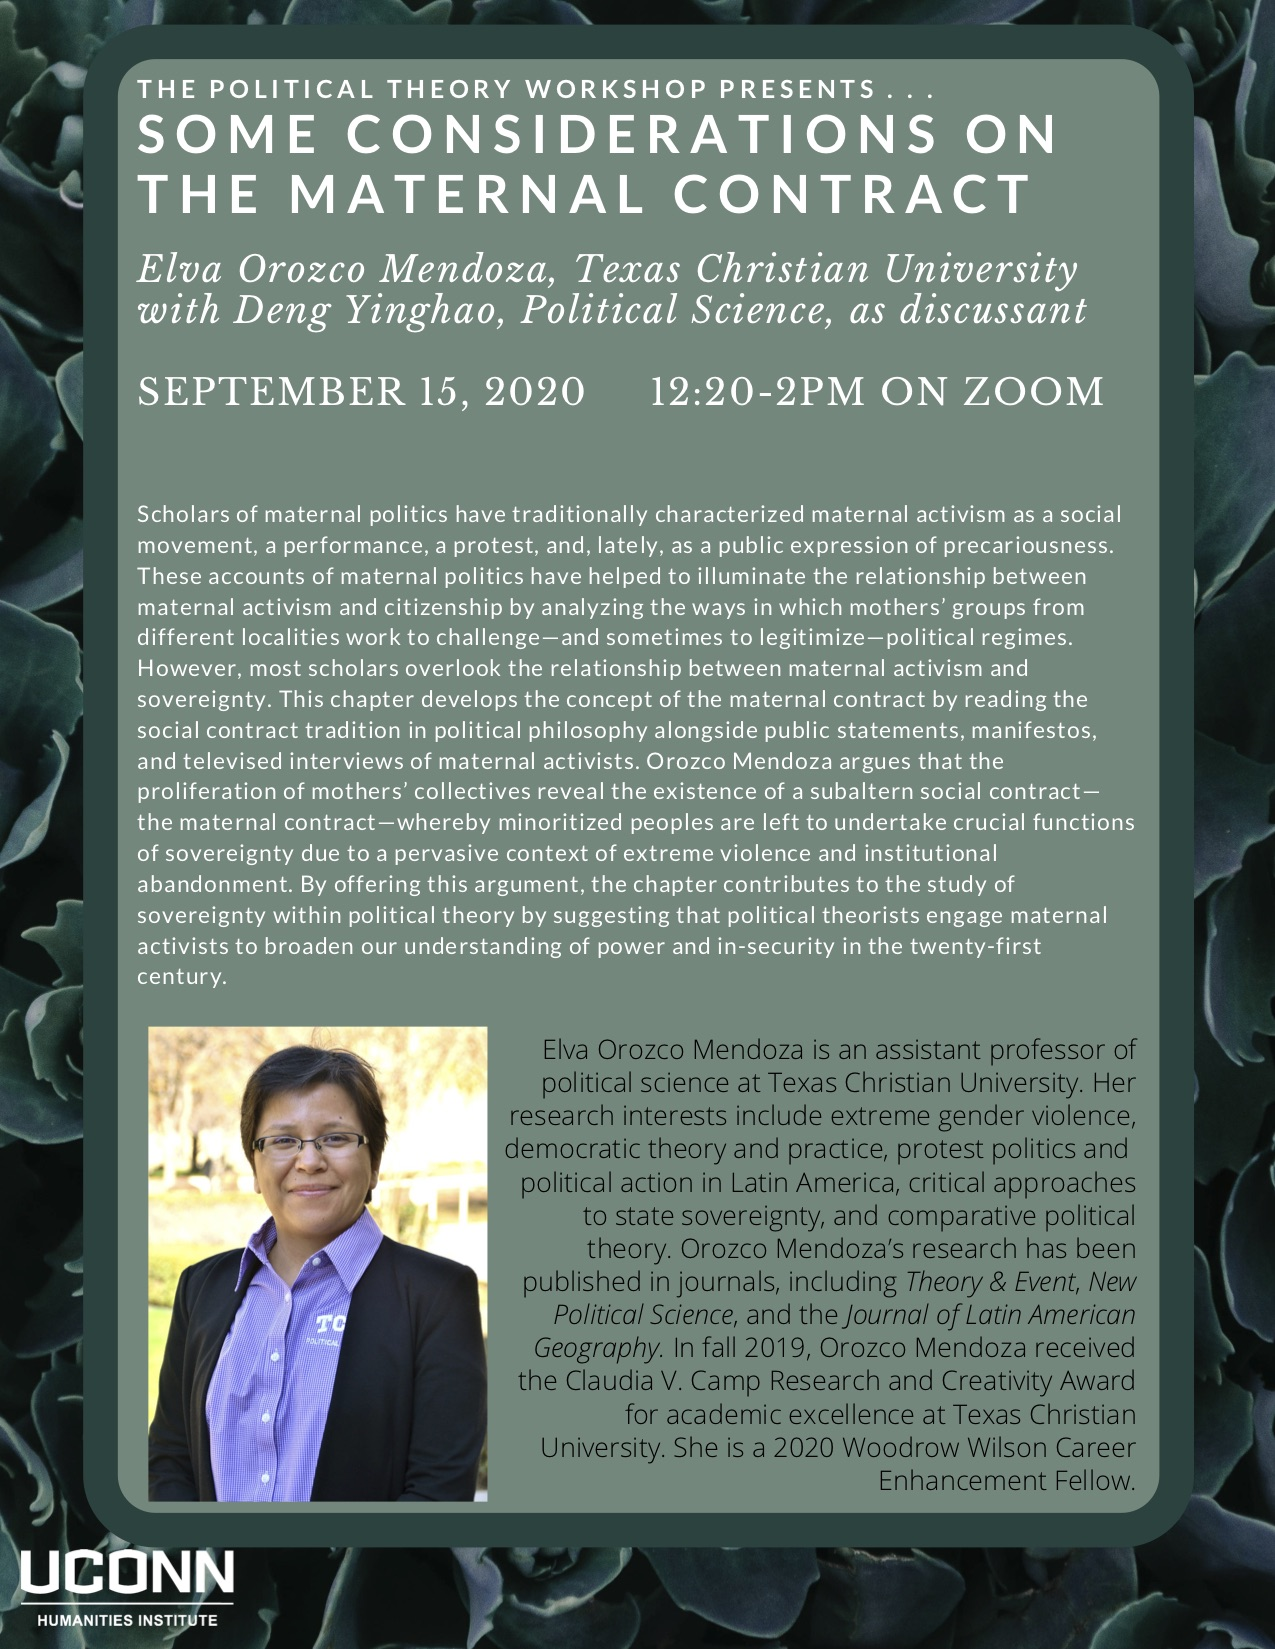 Poster with same text as above and image of Elva Orozco Mendoza.